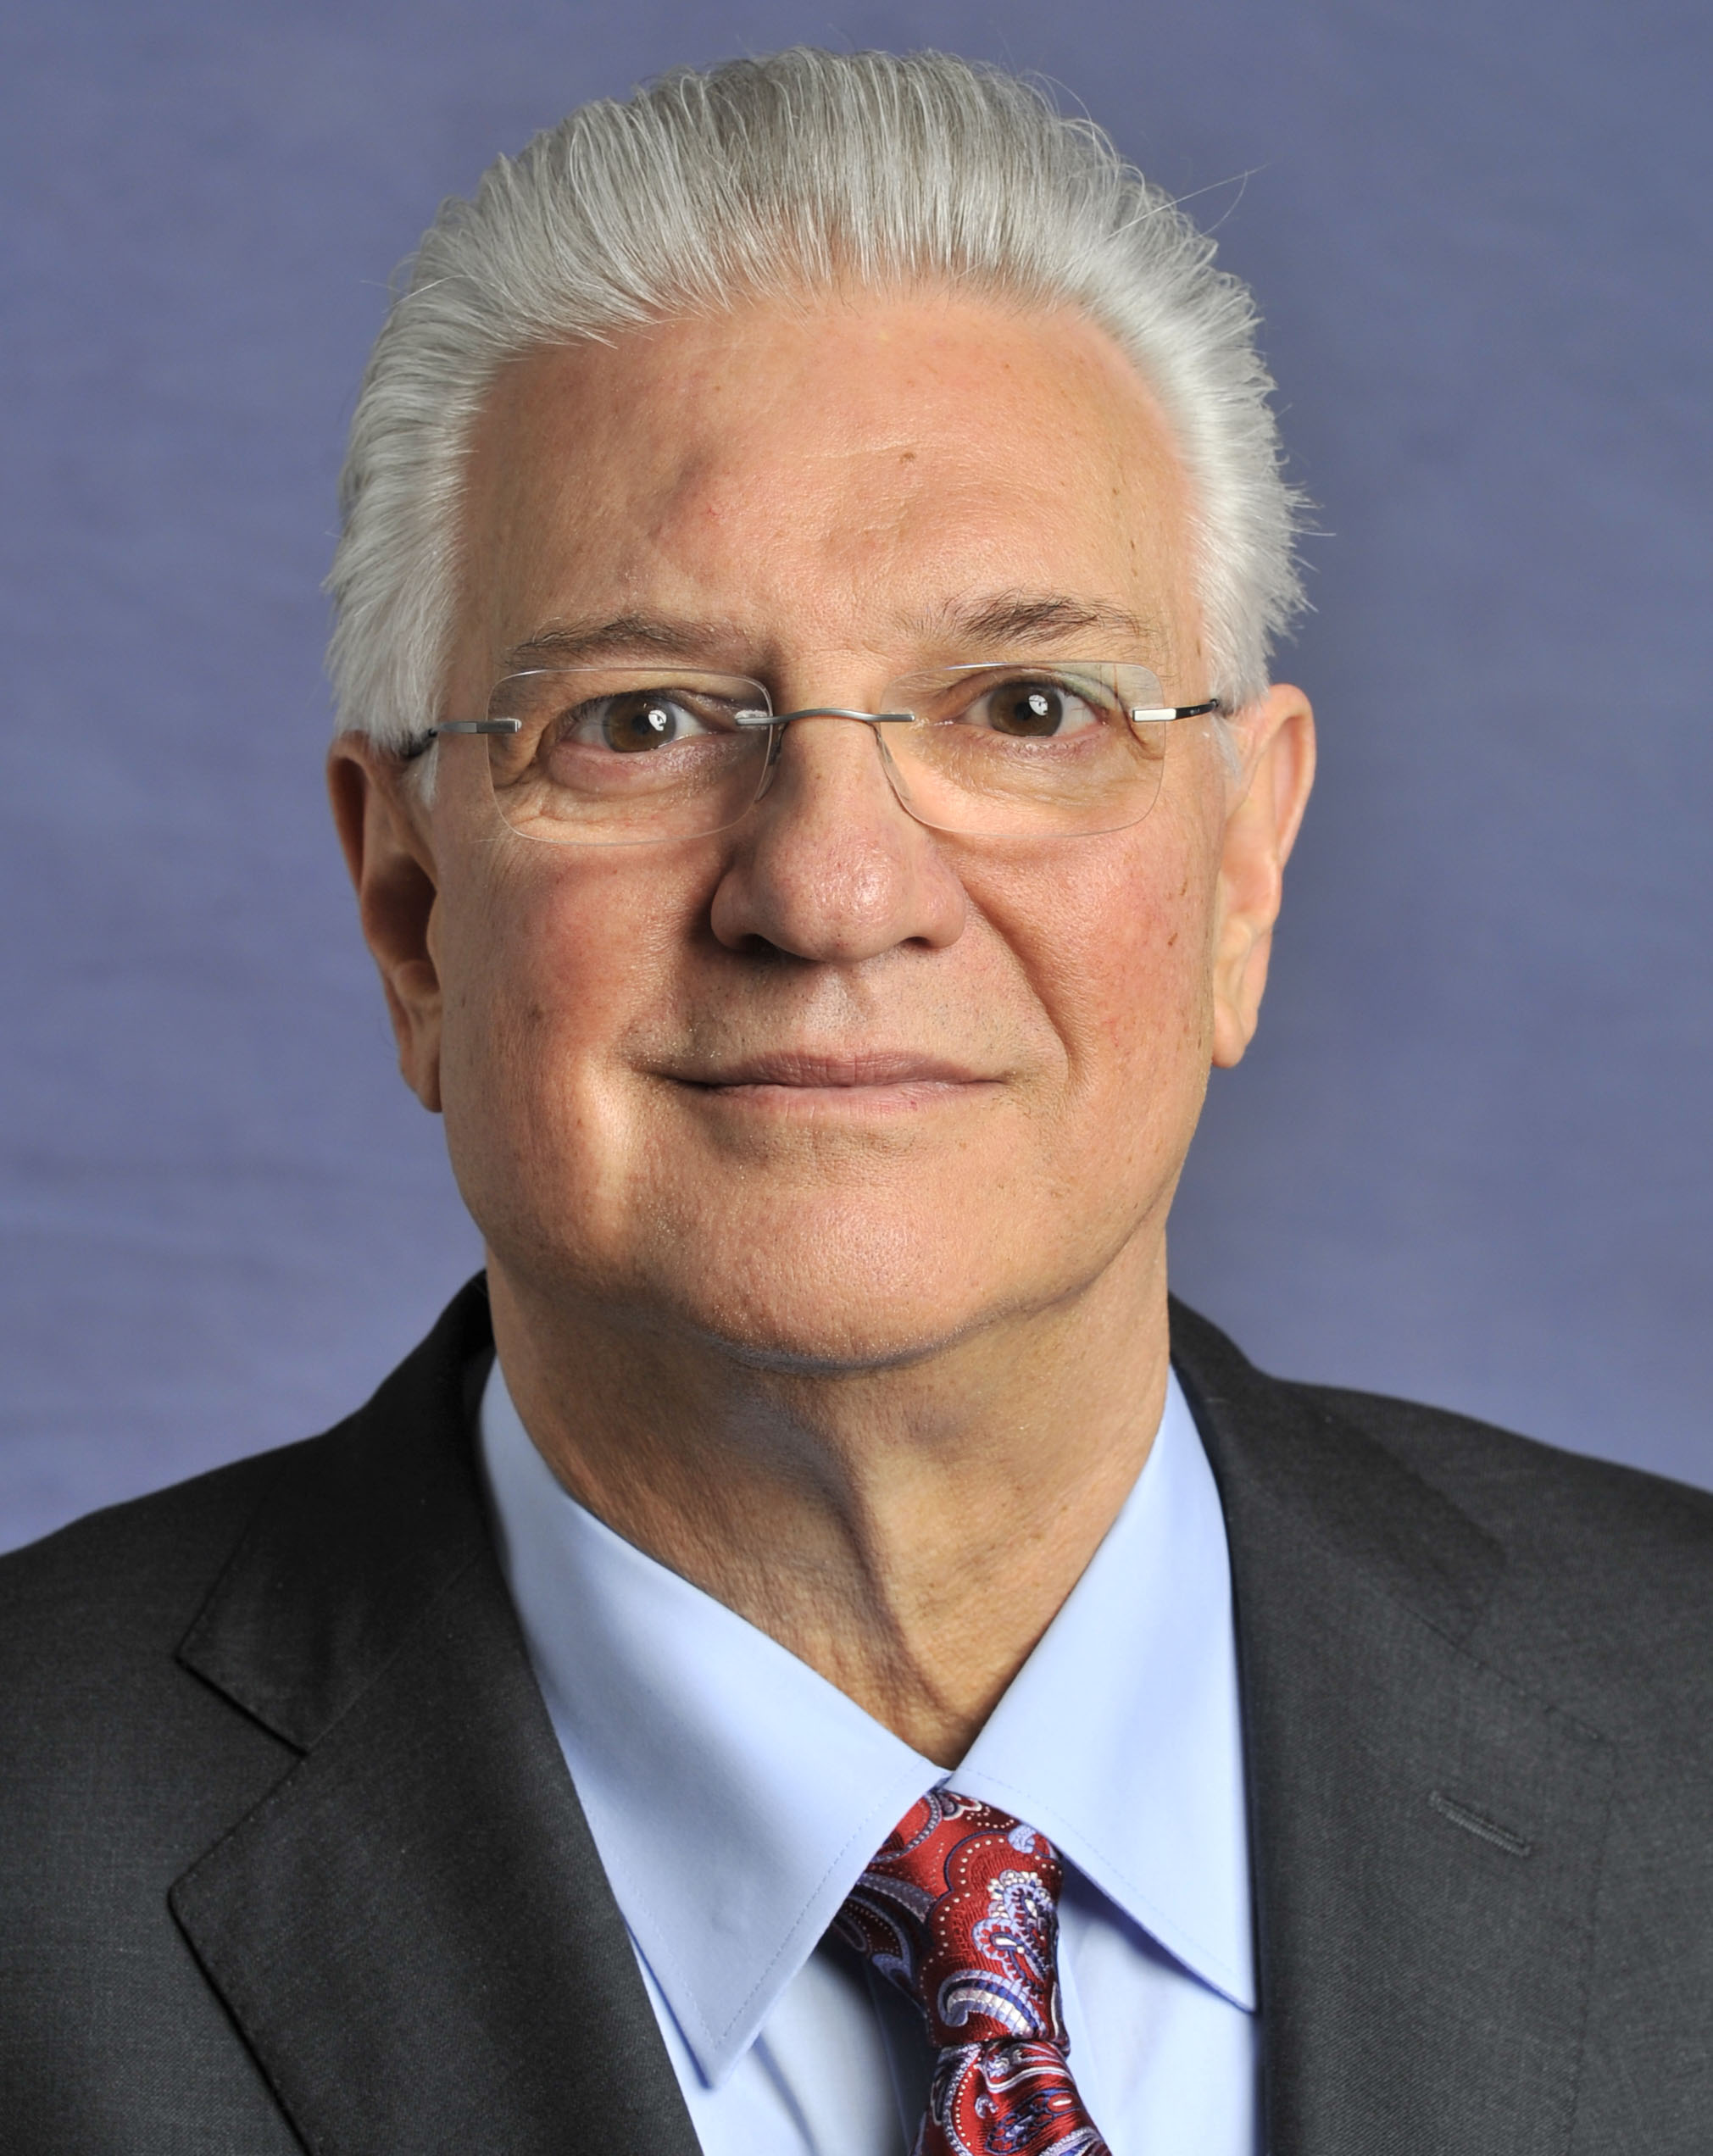 Robert A. Scardelletti